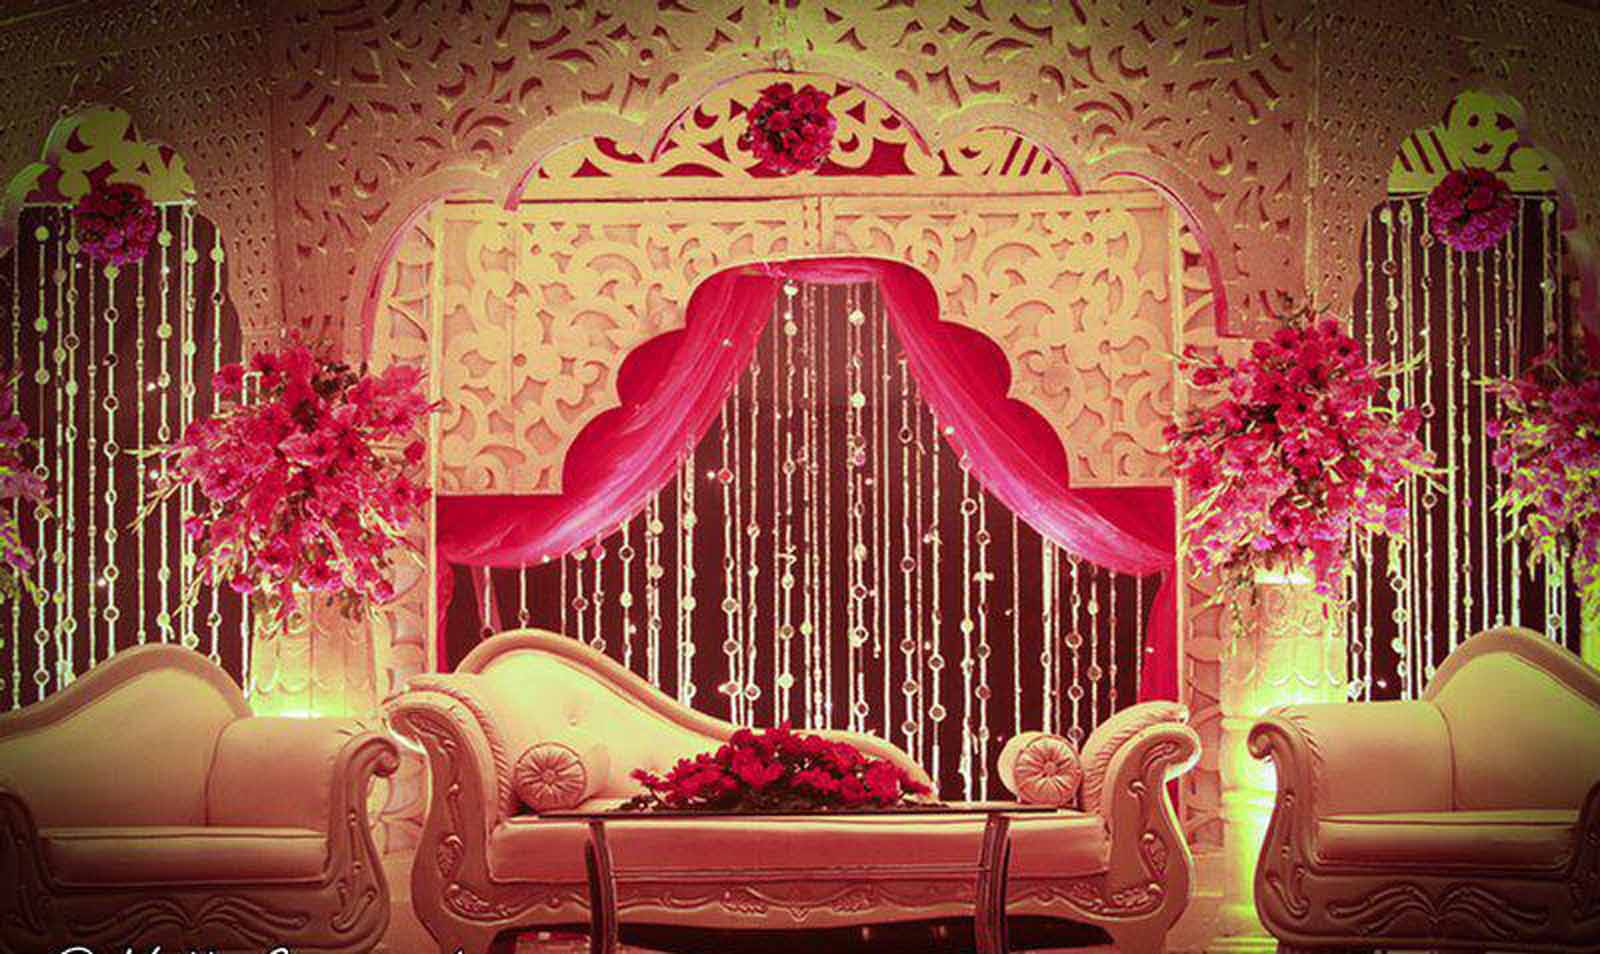 Wedding decorations images living room interior designs for Wedding interior decoration images